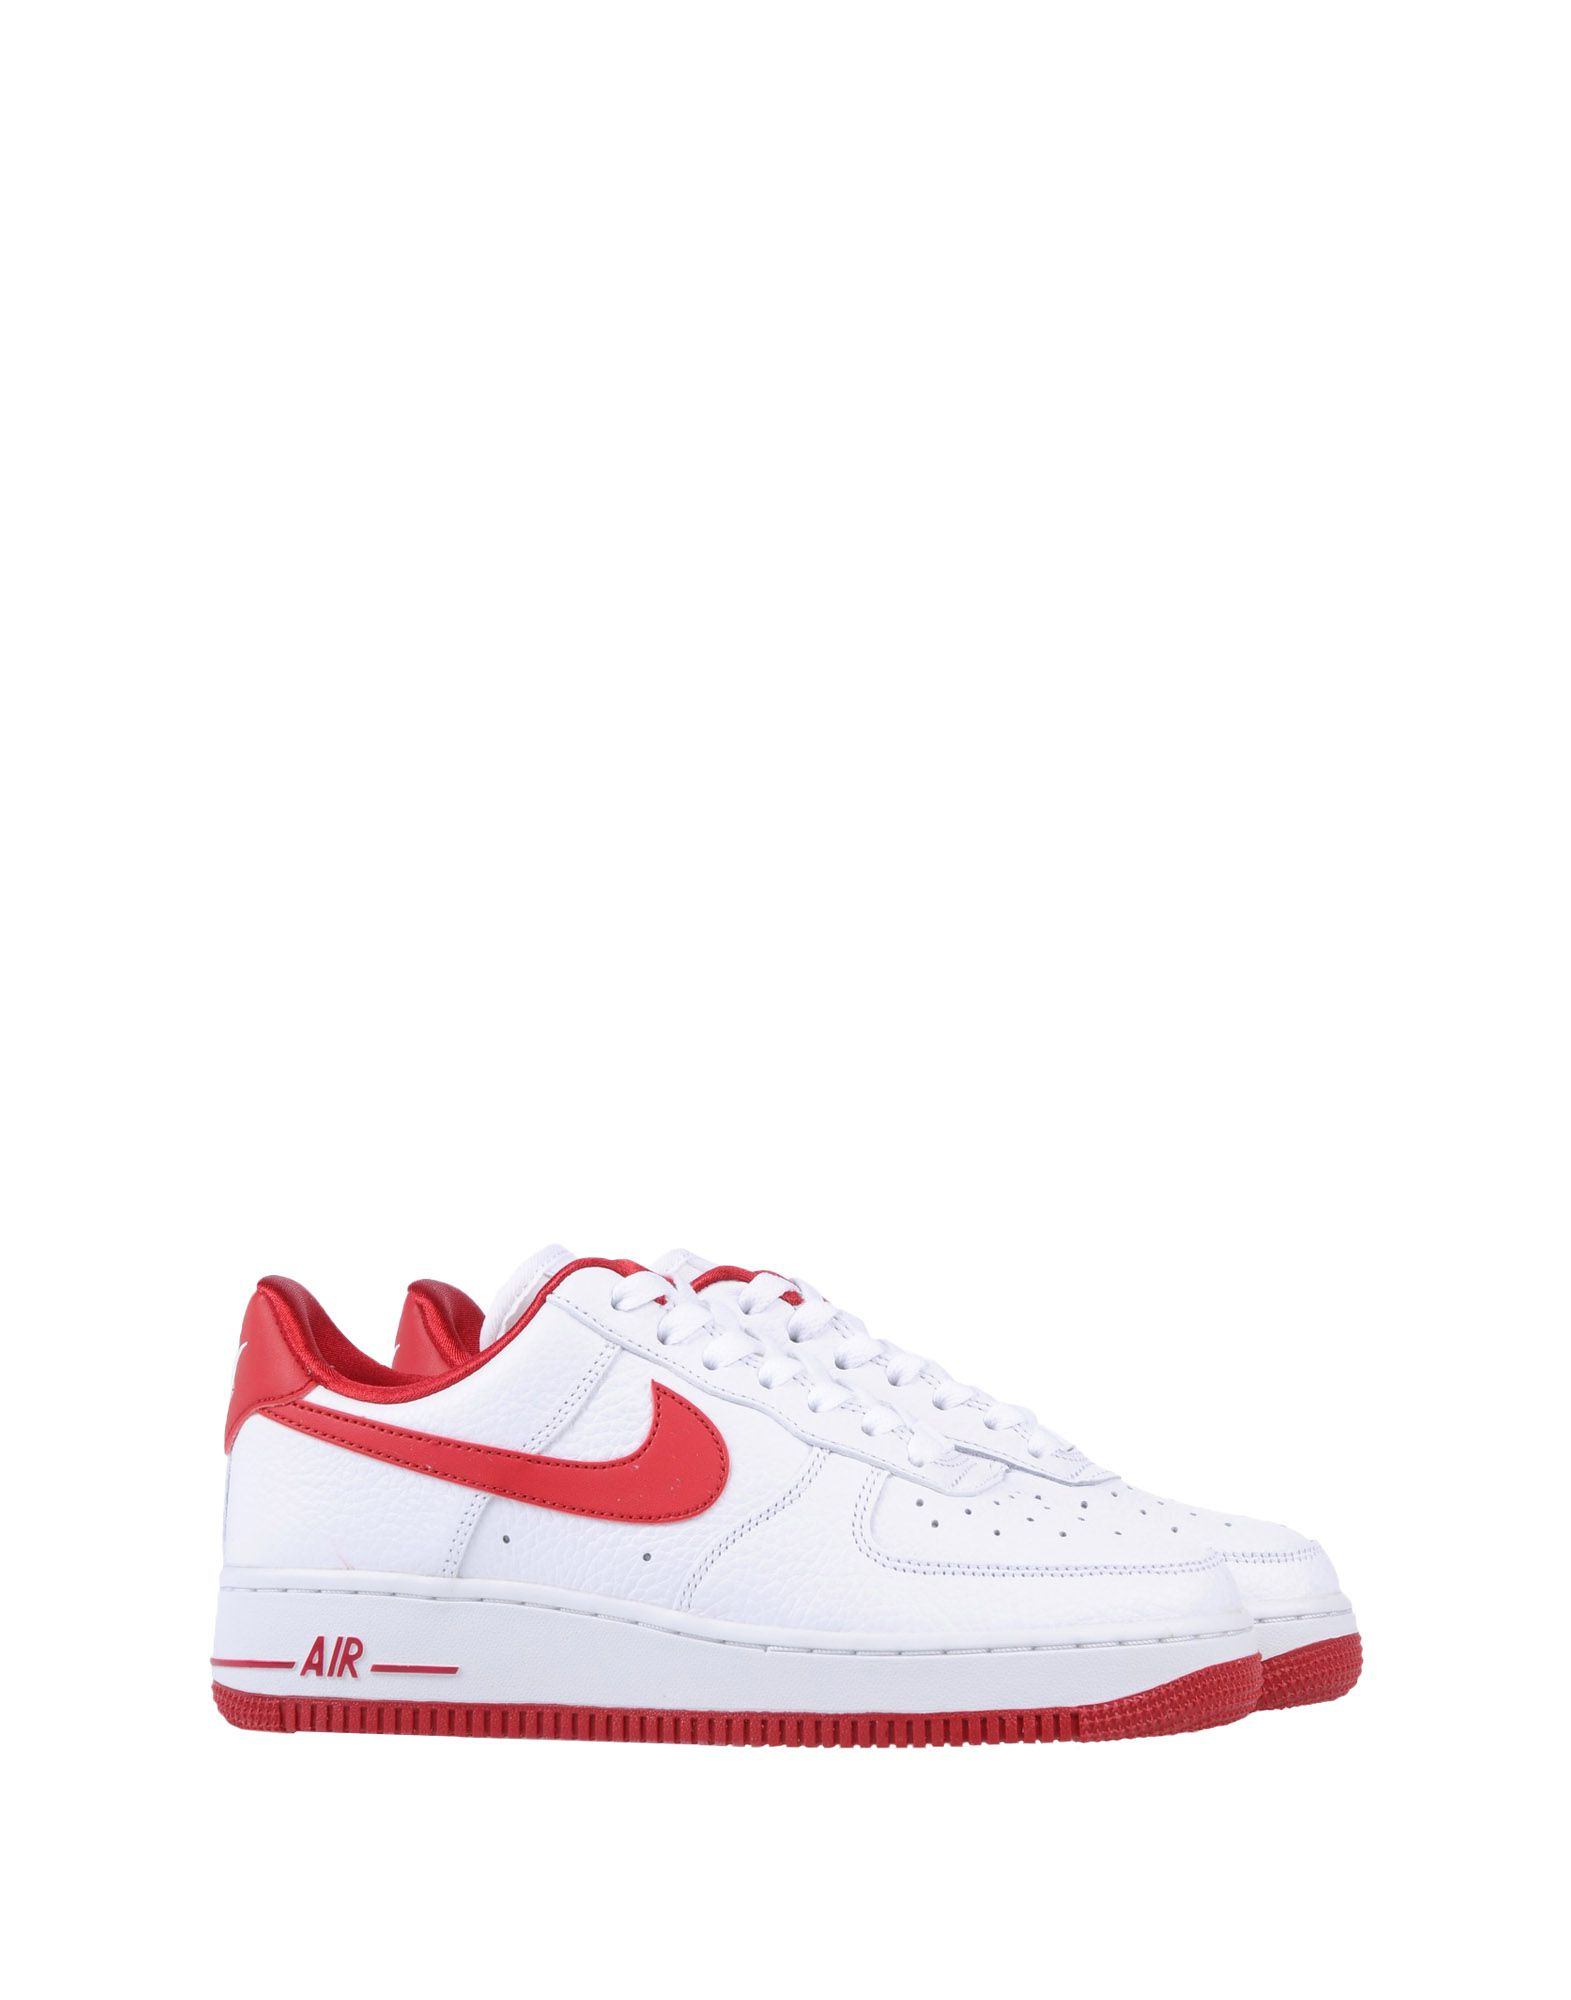 Sneakers Nike  Air Force 1 07 Se - Femme - Sneakers Nike sur